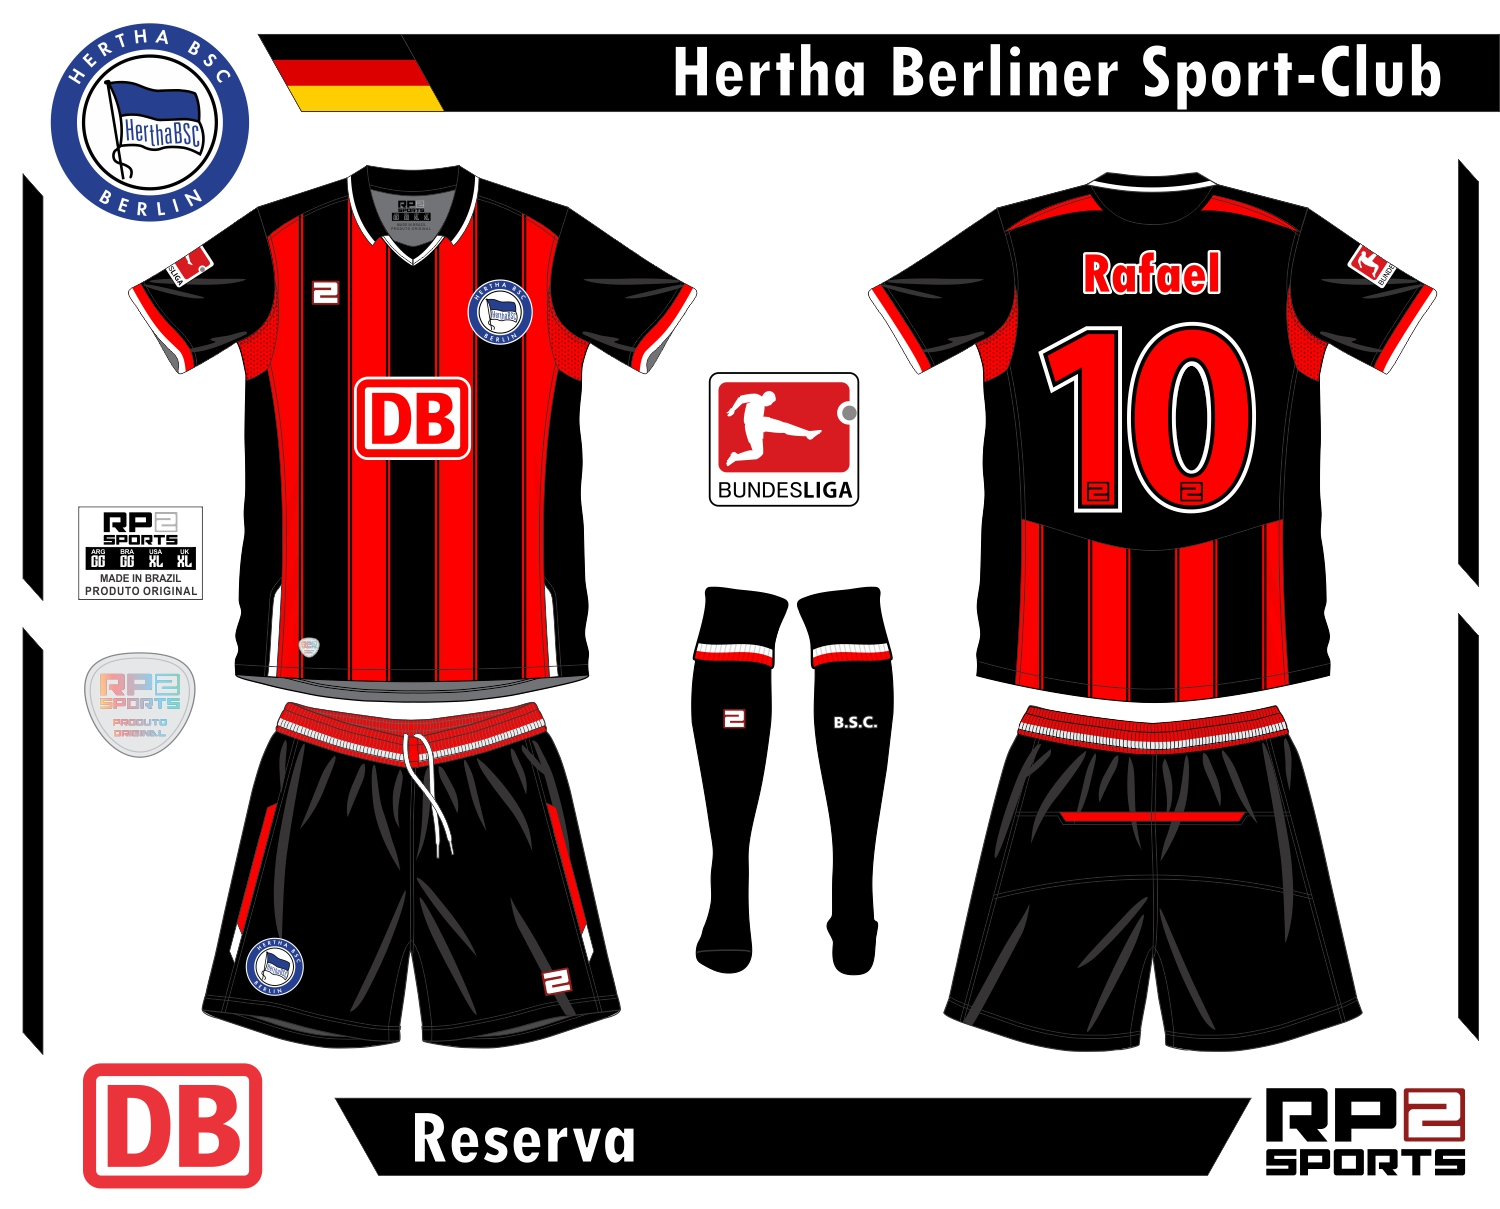 hertha berliner sport club